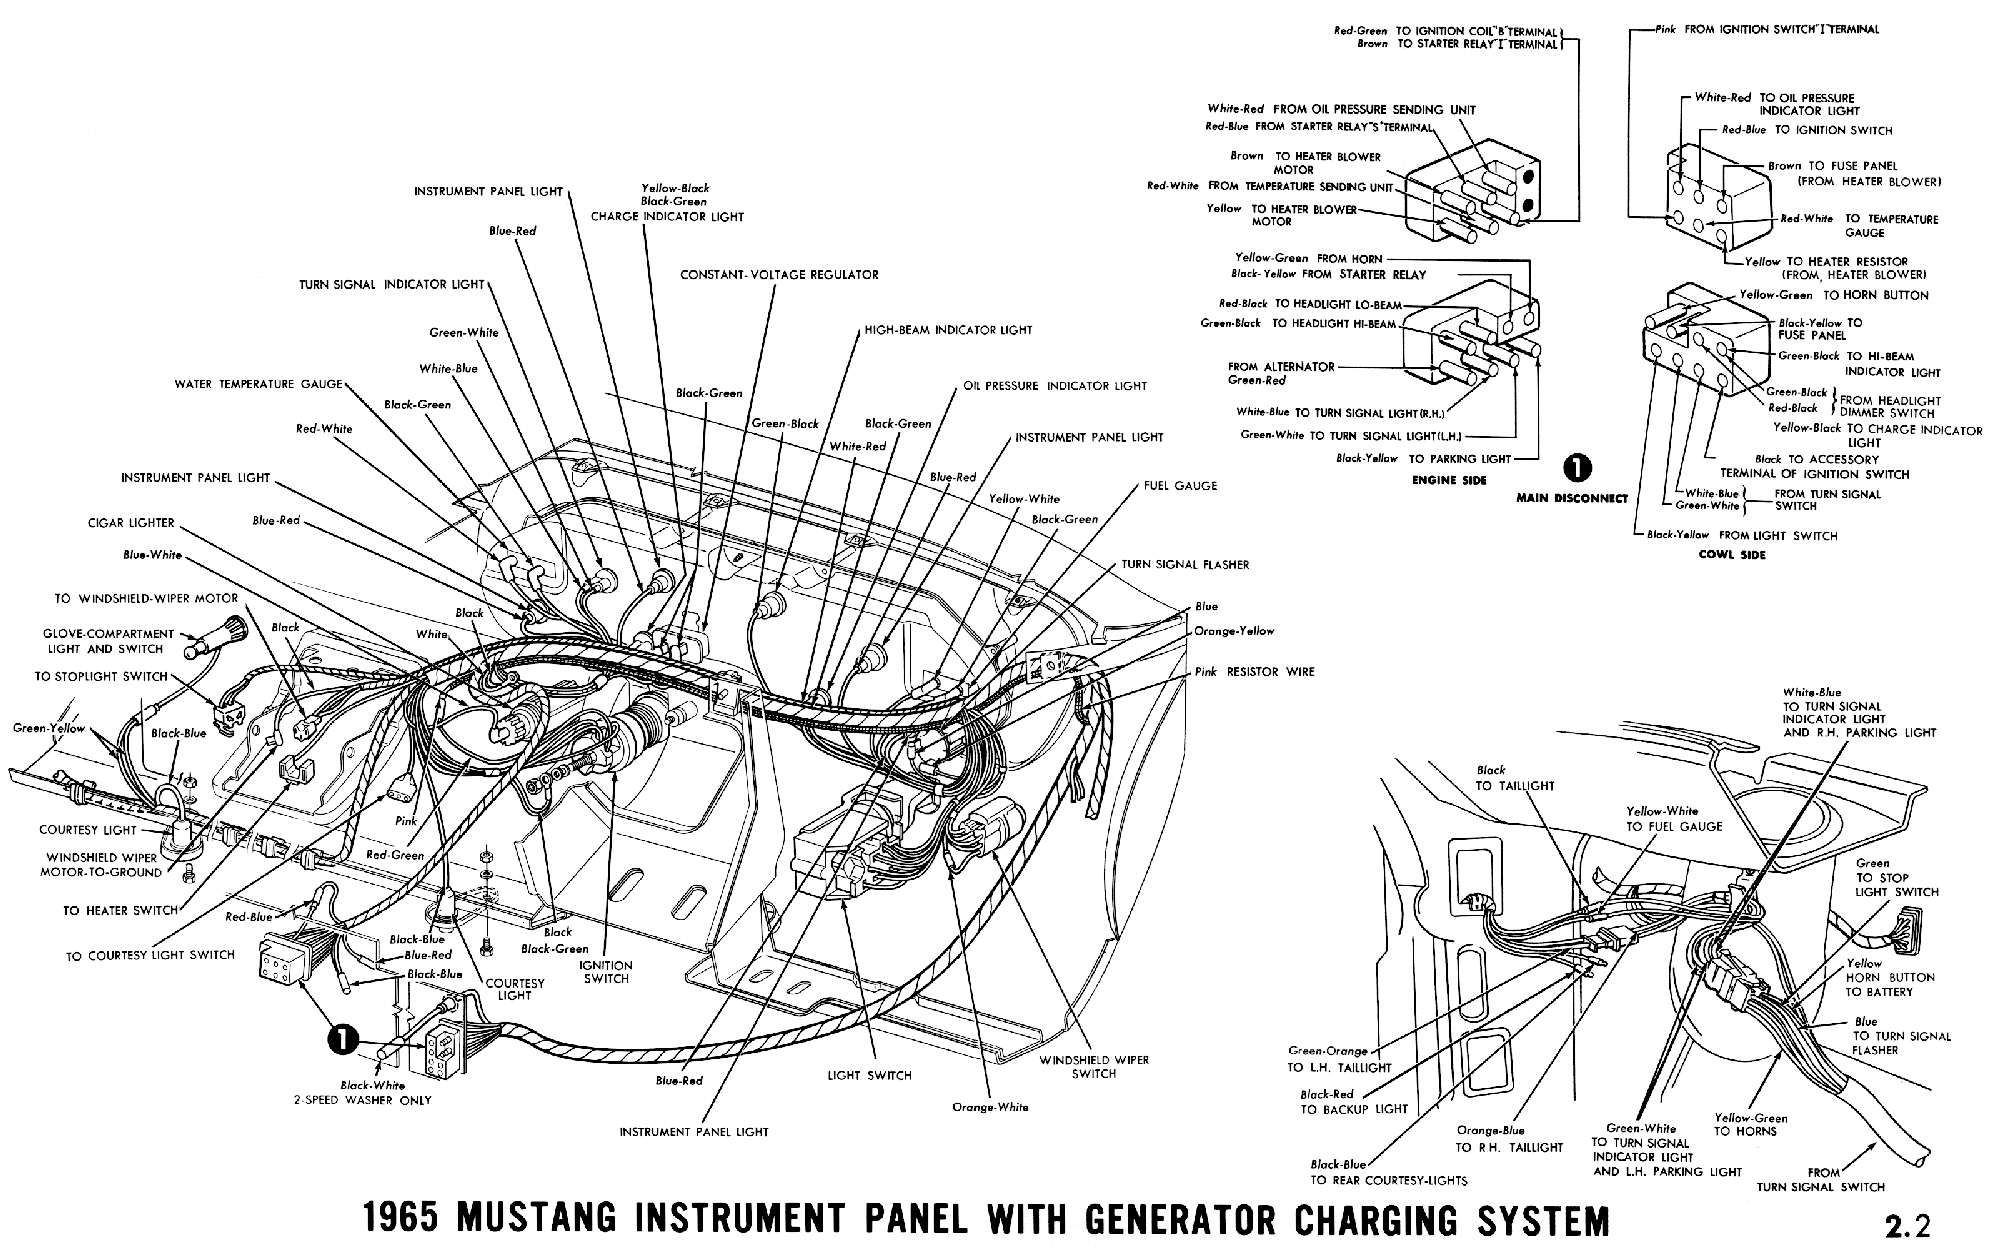 1965 Mustang Wiring Diagrams - Average Joe Restoration | 1965 mustang,  Mustang, Diagram  Pinterest